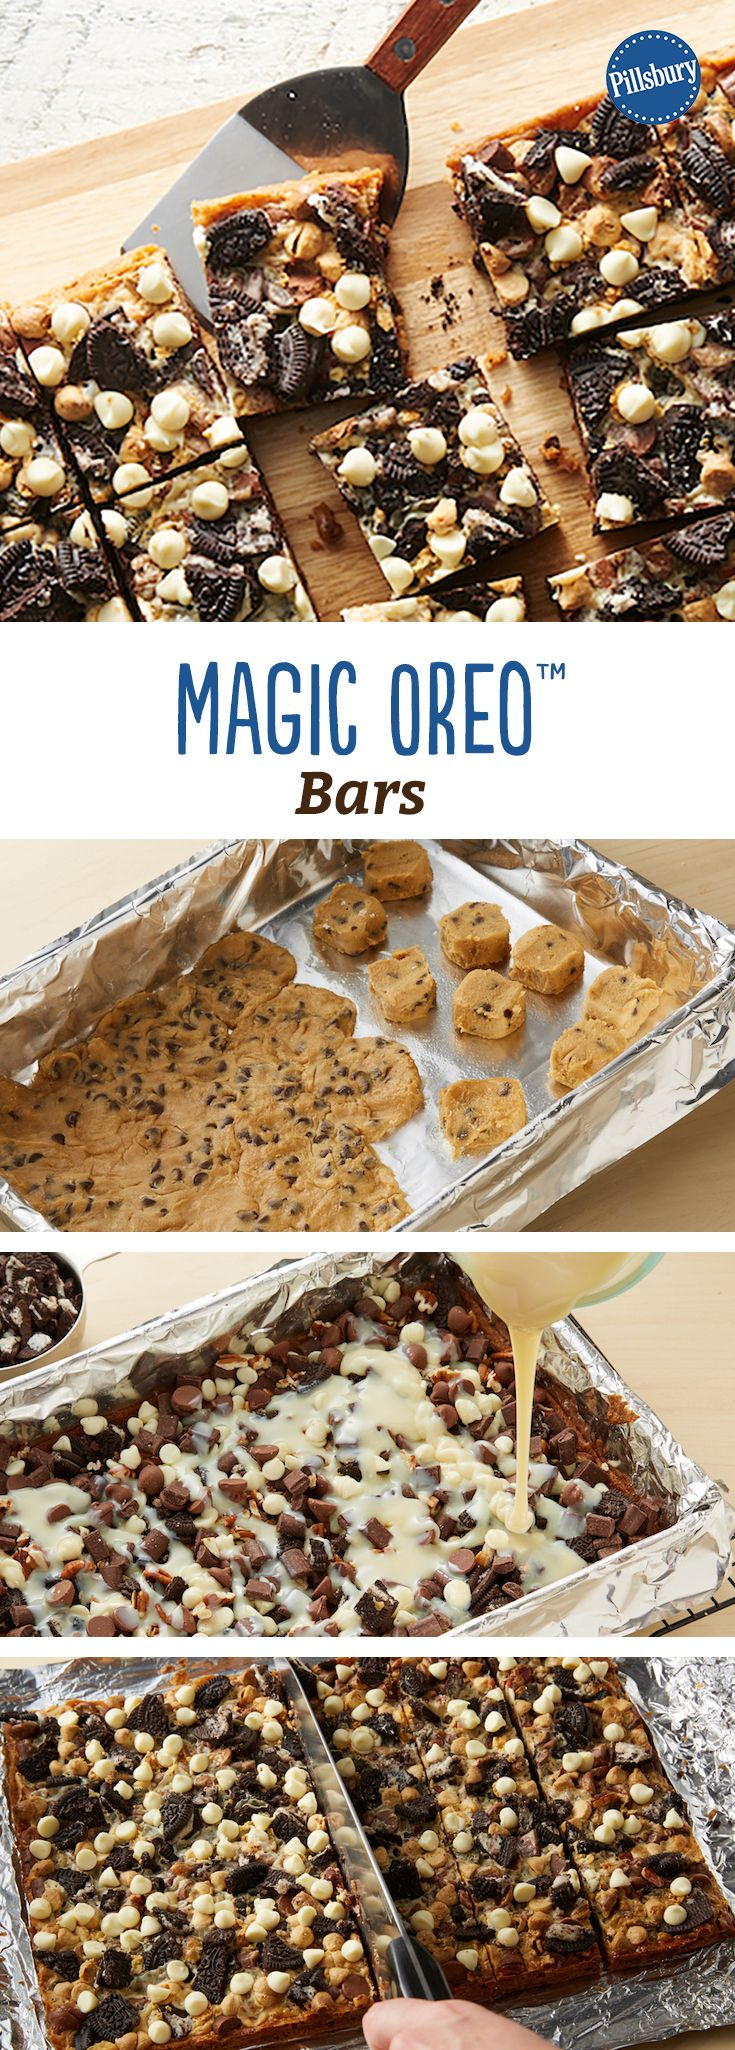 Magic Oreo™ Bars: An extra-magical take on a seven-layer bar, this easy Oreo™ bar will be a huge hit with your family.